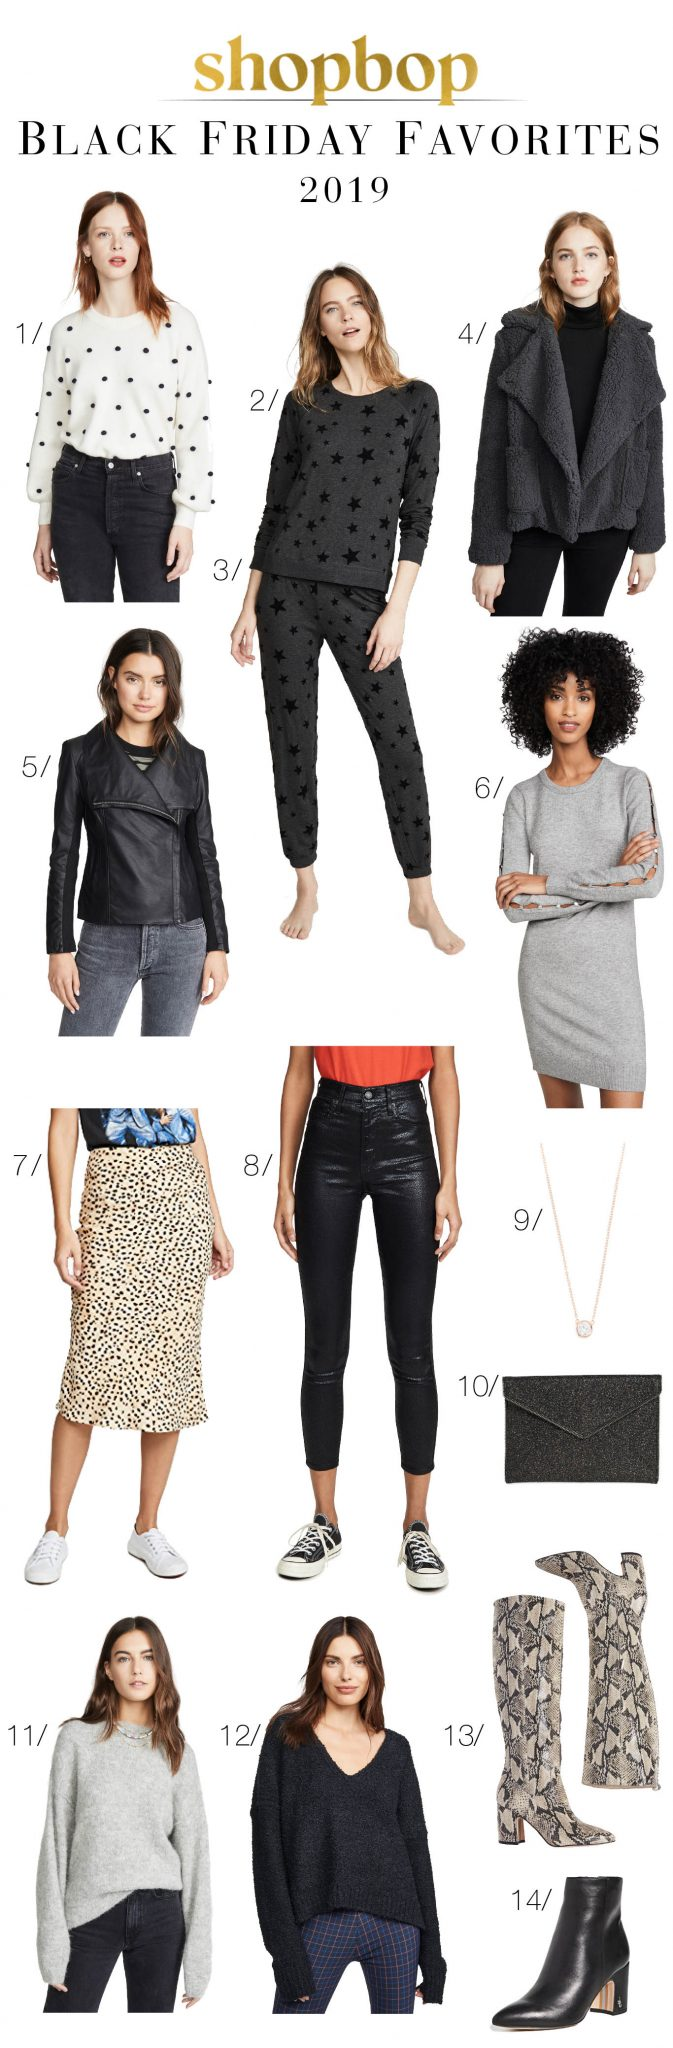 Black Friday + Shopbop Buy More, Save More = the perfect time to buy. Sam Edelman boots, Free People sweaters, BB Dakota...SO GOOD. Shop NOW.